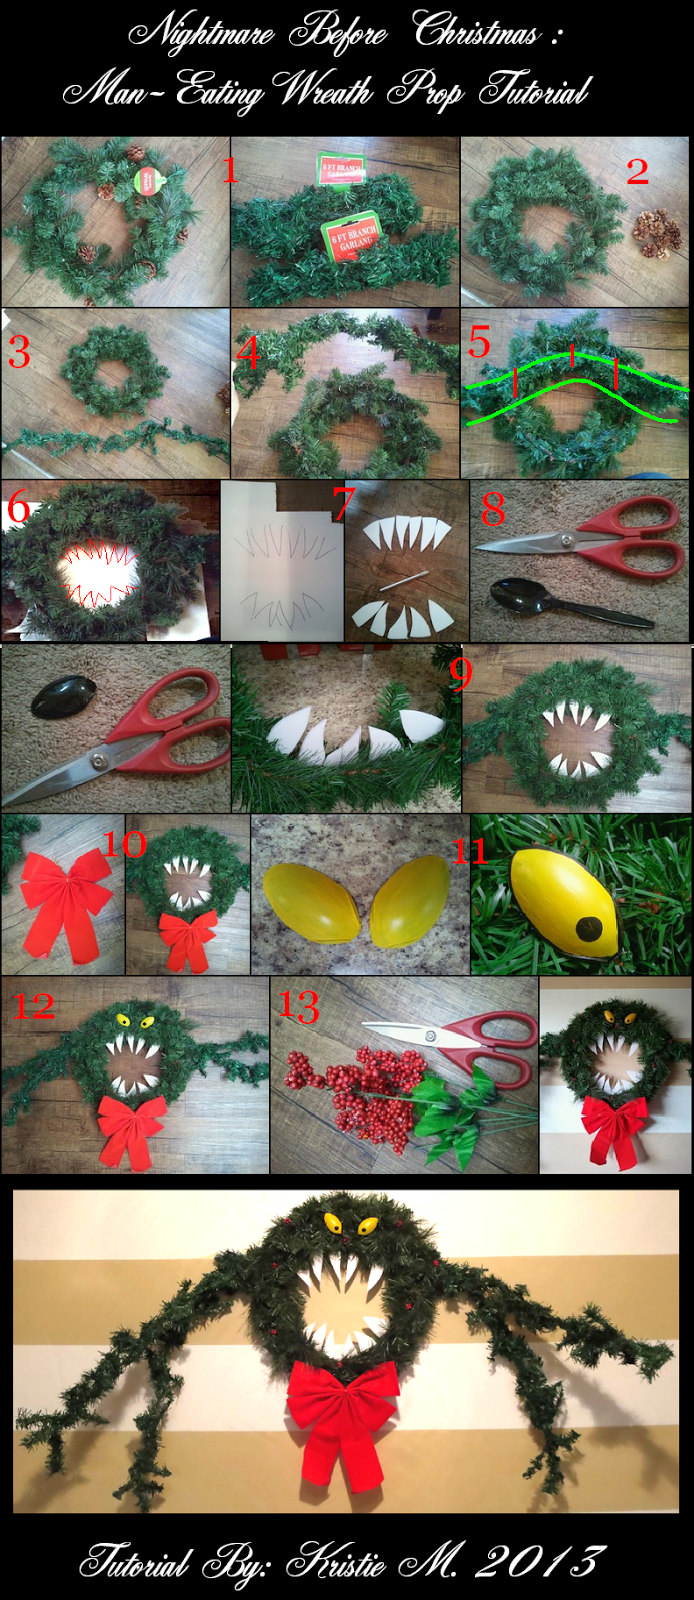 Diy Nightmare Before Christmas Wreath Pictures Photos And Images For Facebook Tumblr Pinterest And Twitter,How To Make Envelope With Paper Step By Step